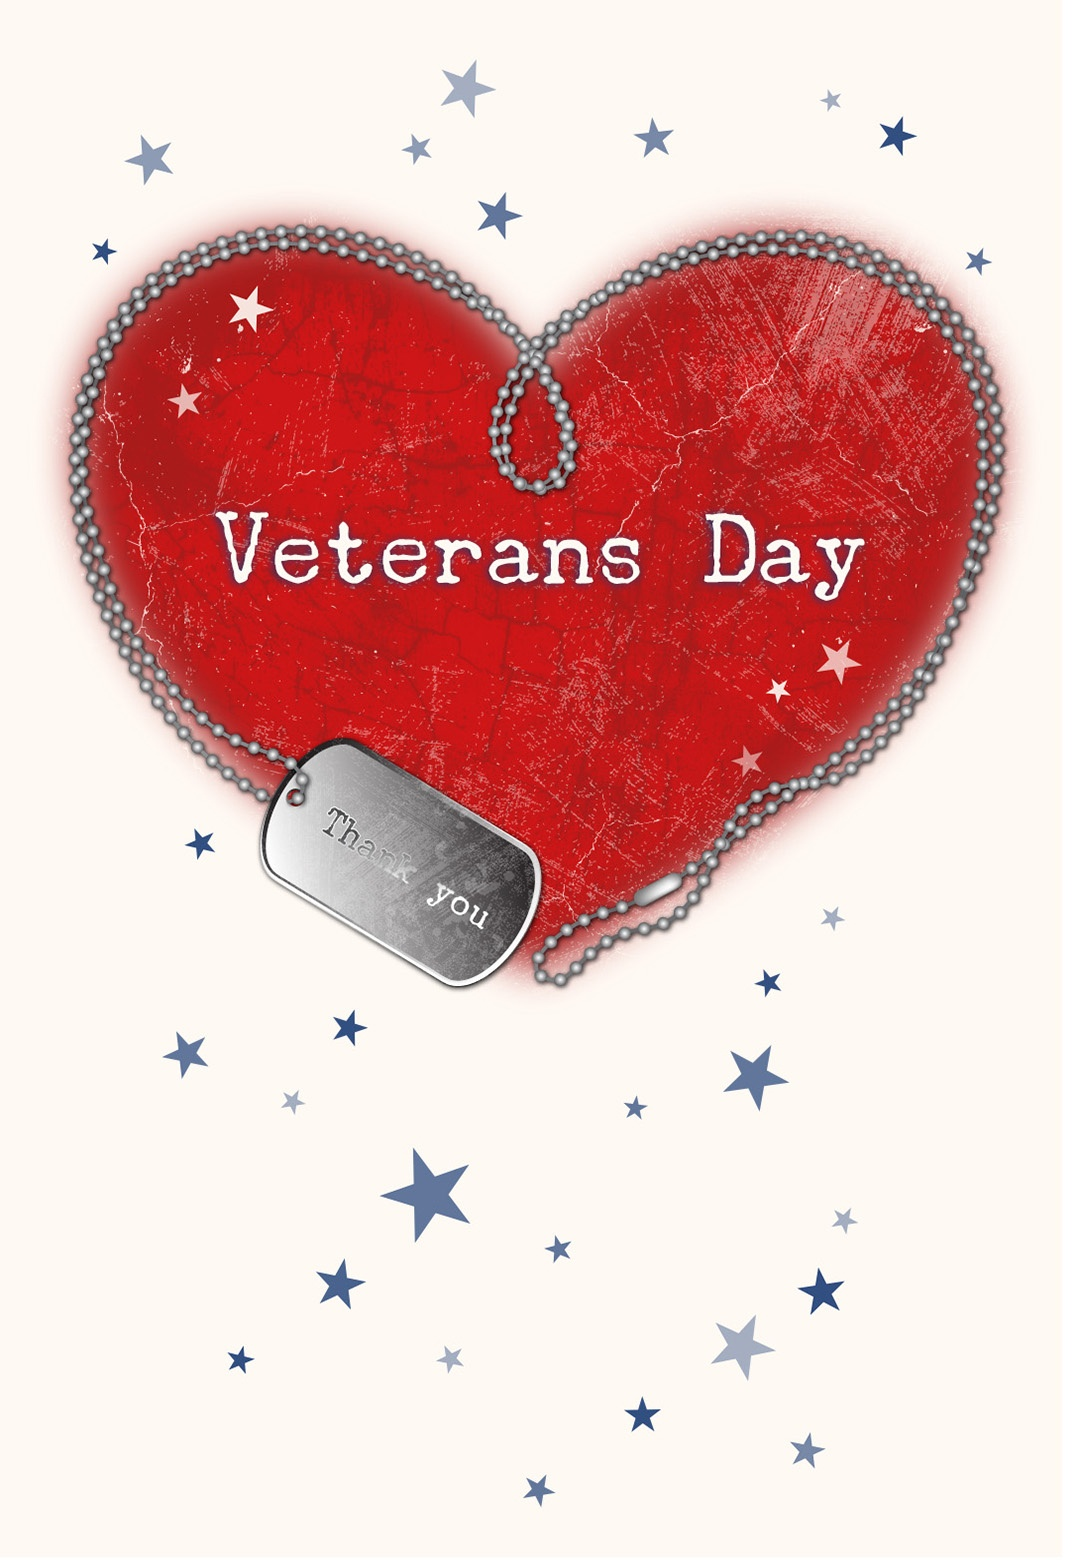 Veterans Day Appreciation - Free Veterans Day Card   Greetings Island - Veterans Day Free Printable Cards